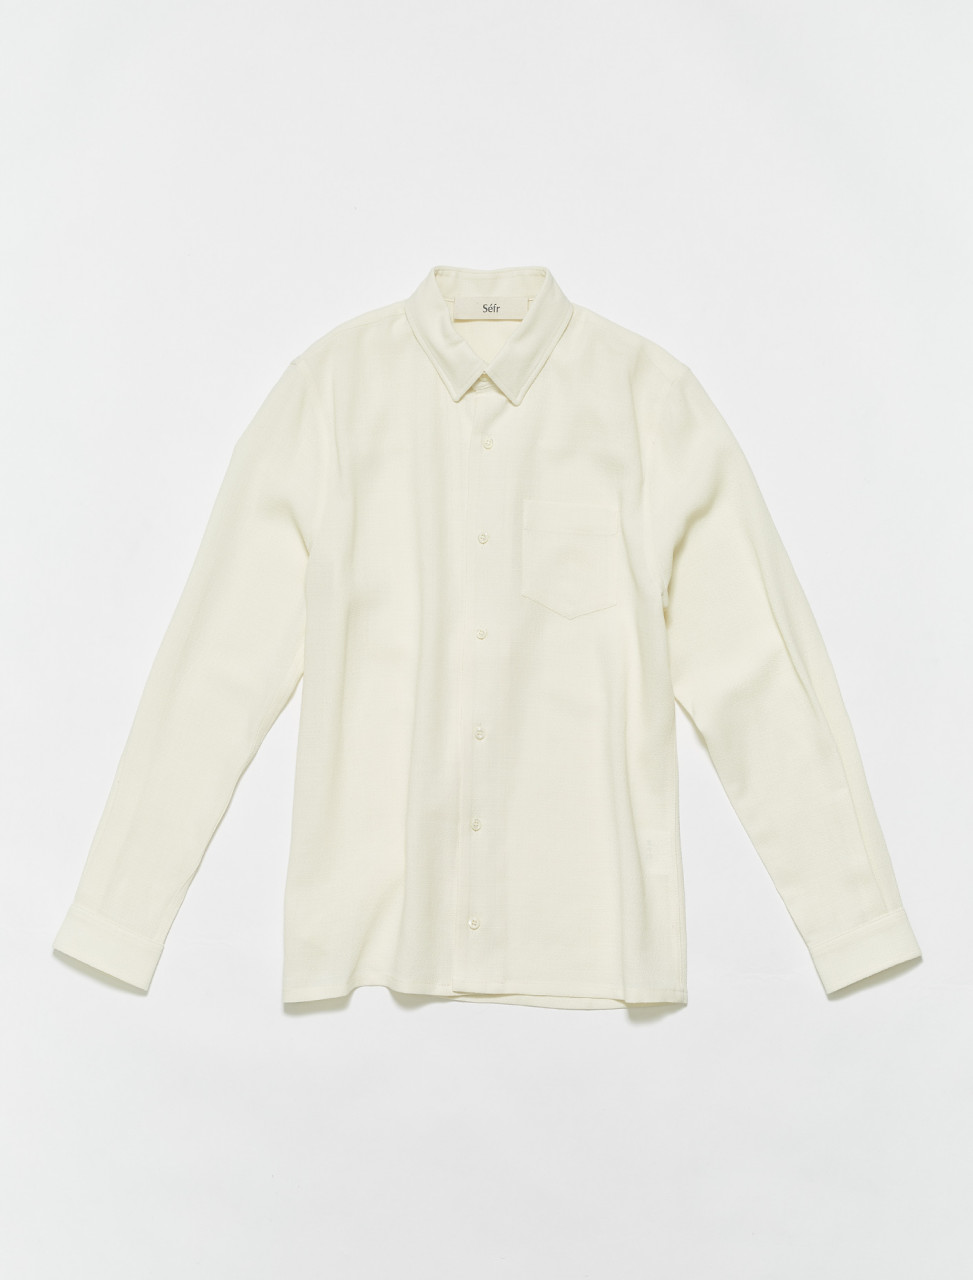 HS-OW SEFR HAMPUS SHIRT OFF WHITE